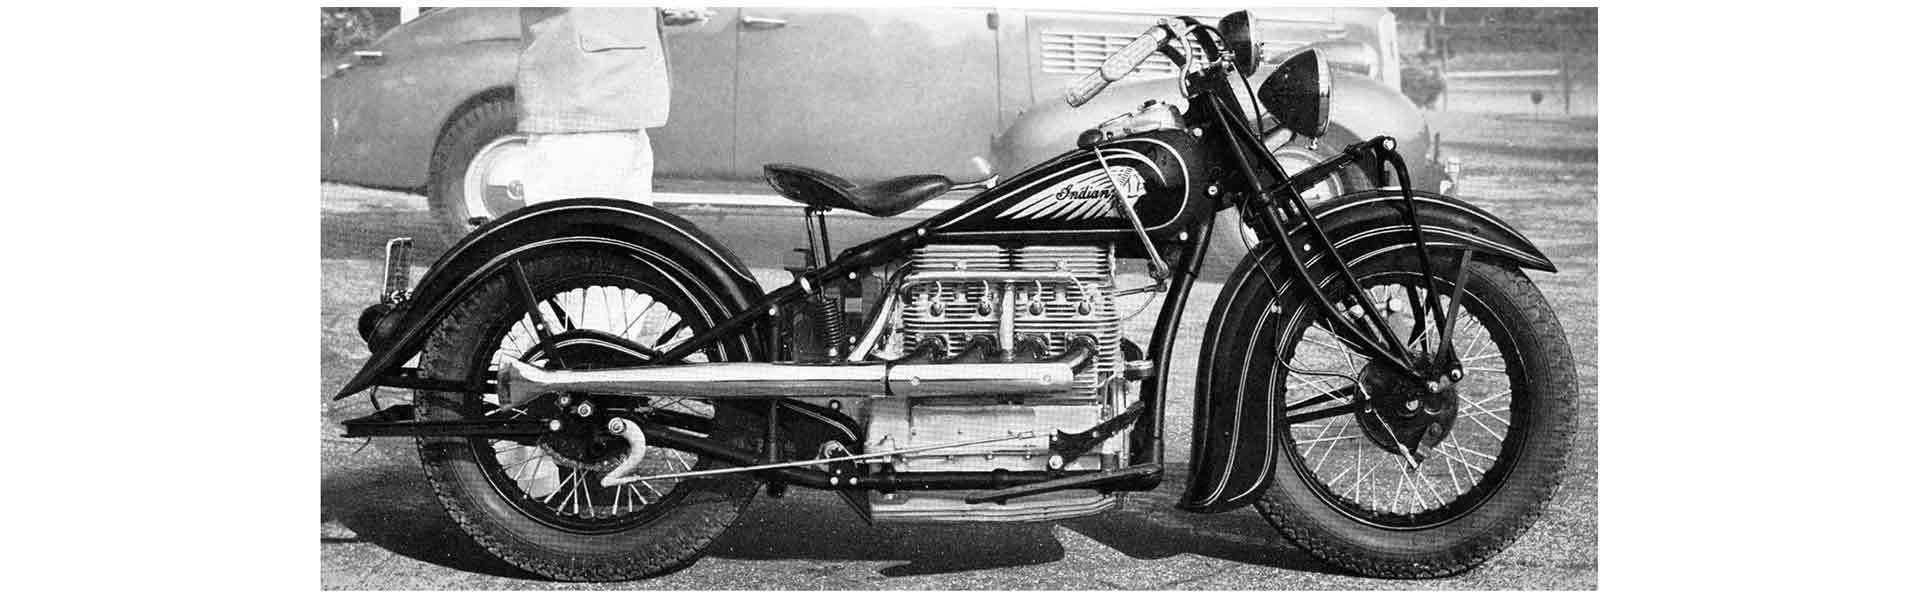 starklite indian motorcycles indian motorcycle parts & service  1946 indian chief wiring diagram #6